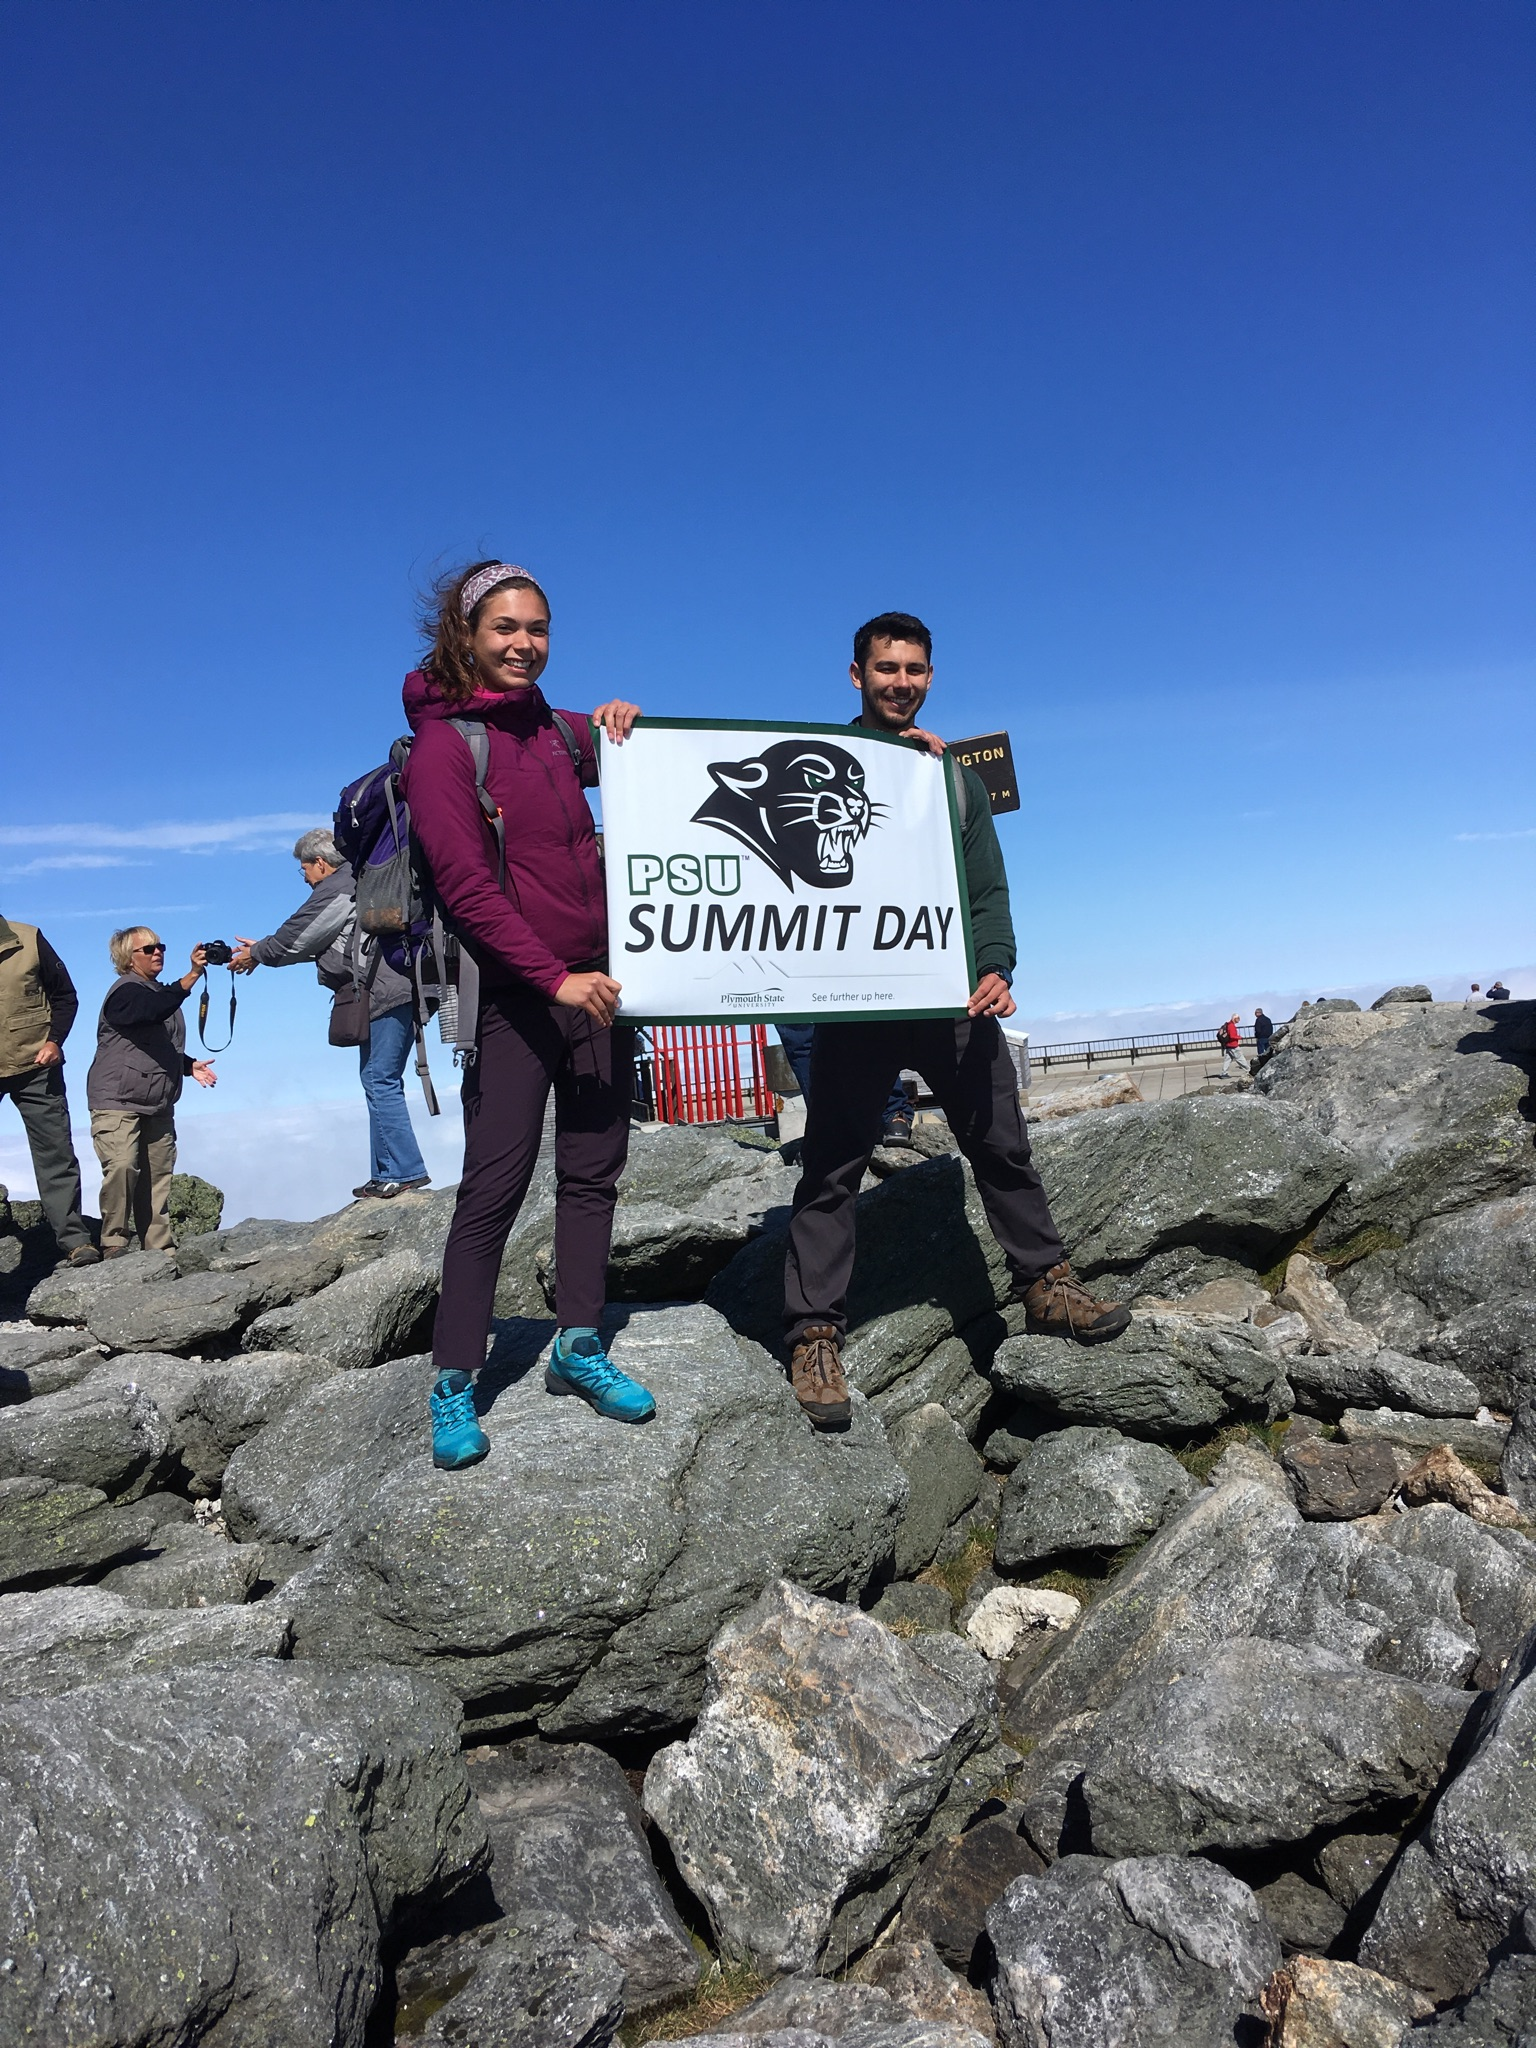 Summit Day participants on the top of Mt. Washington.